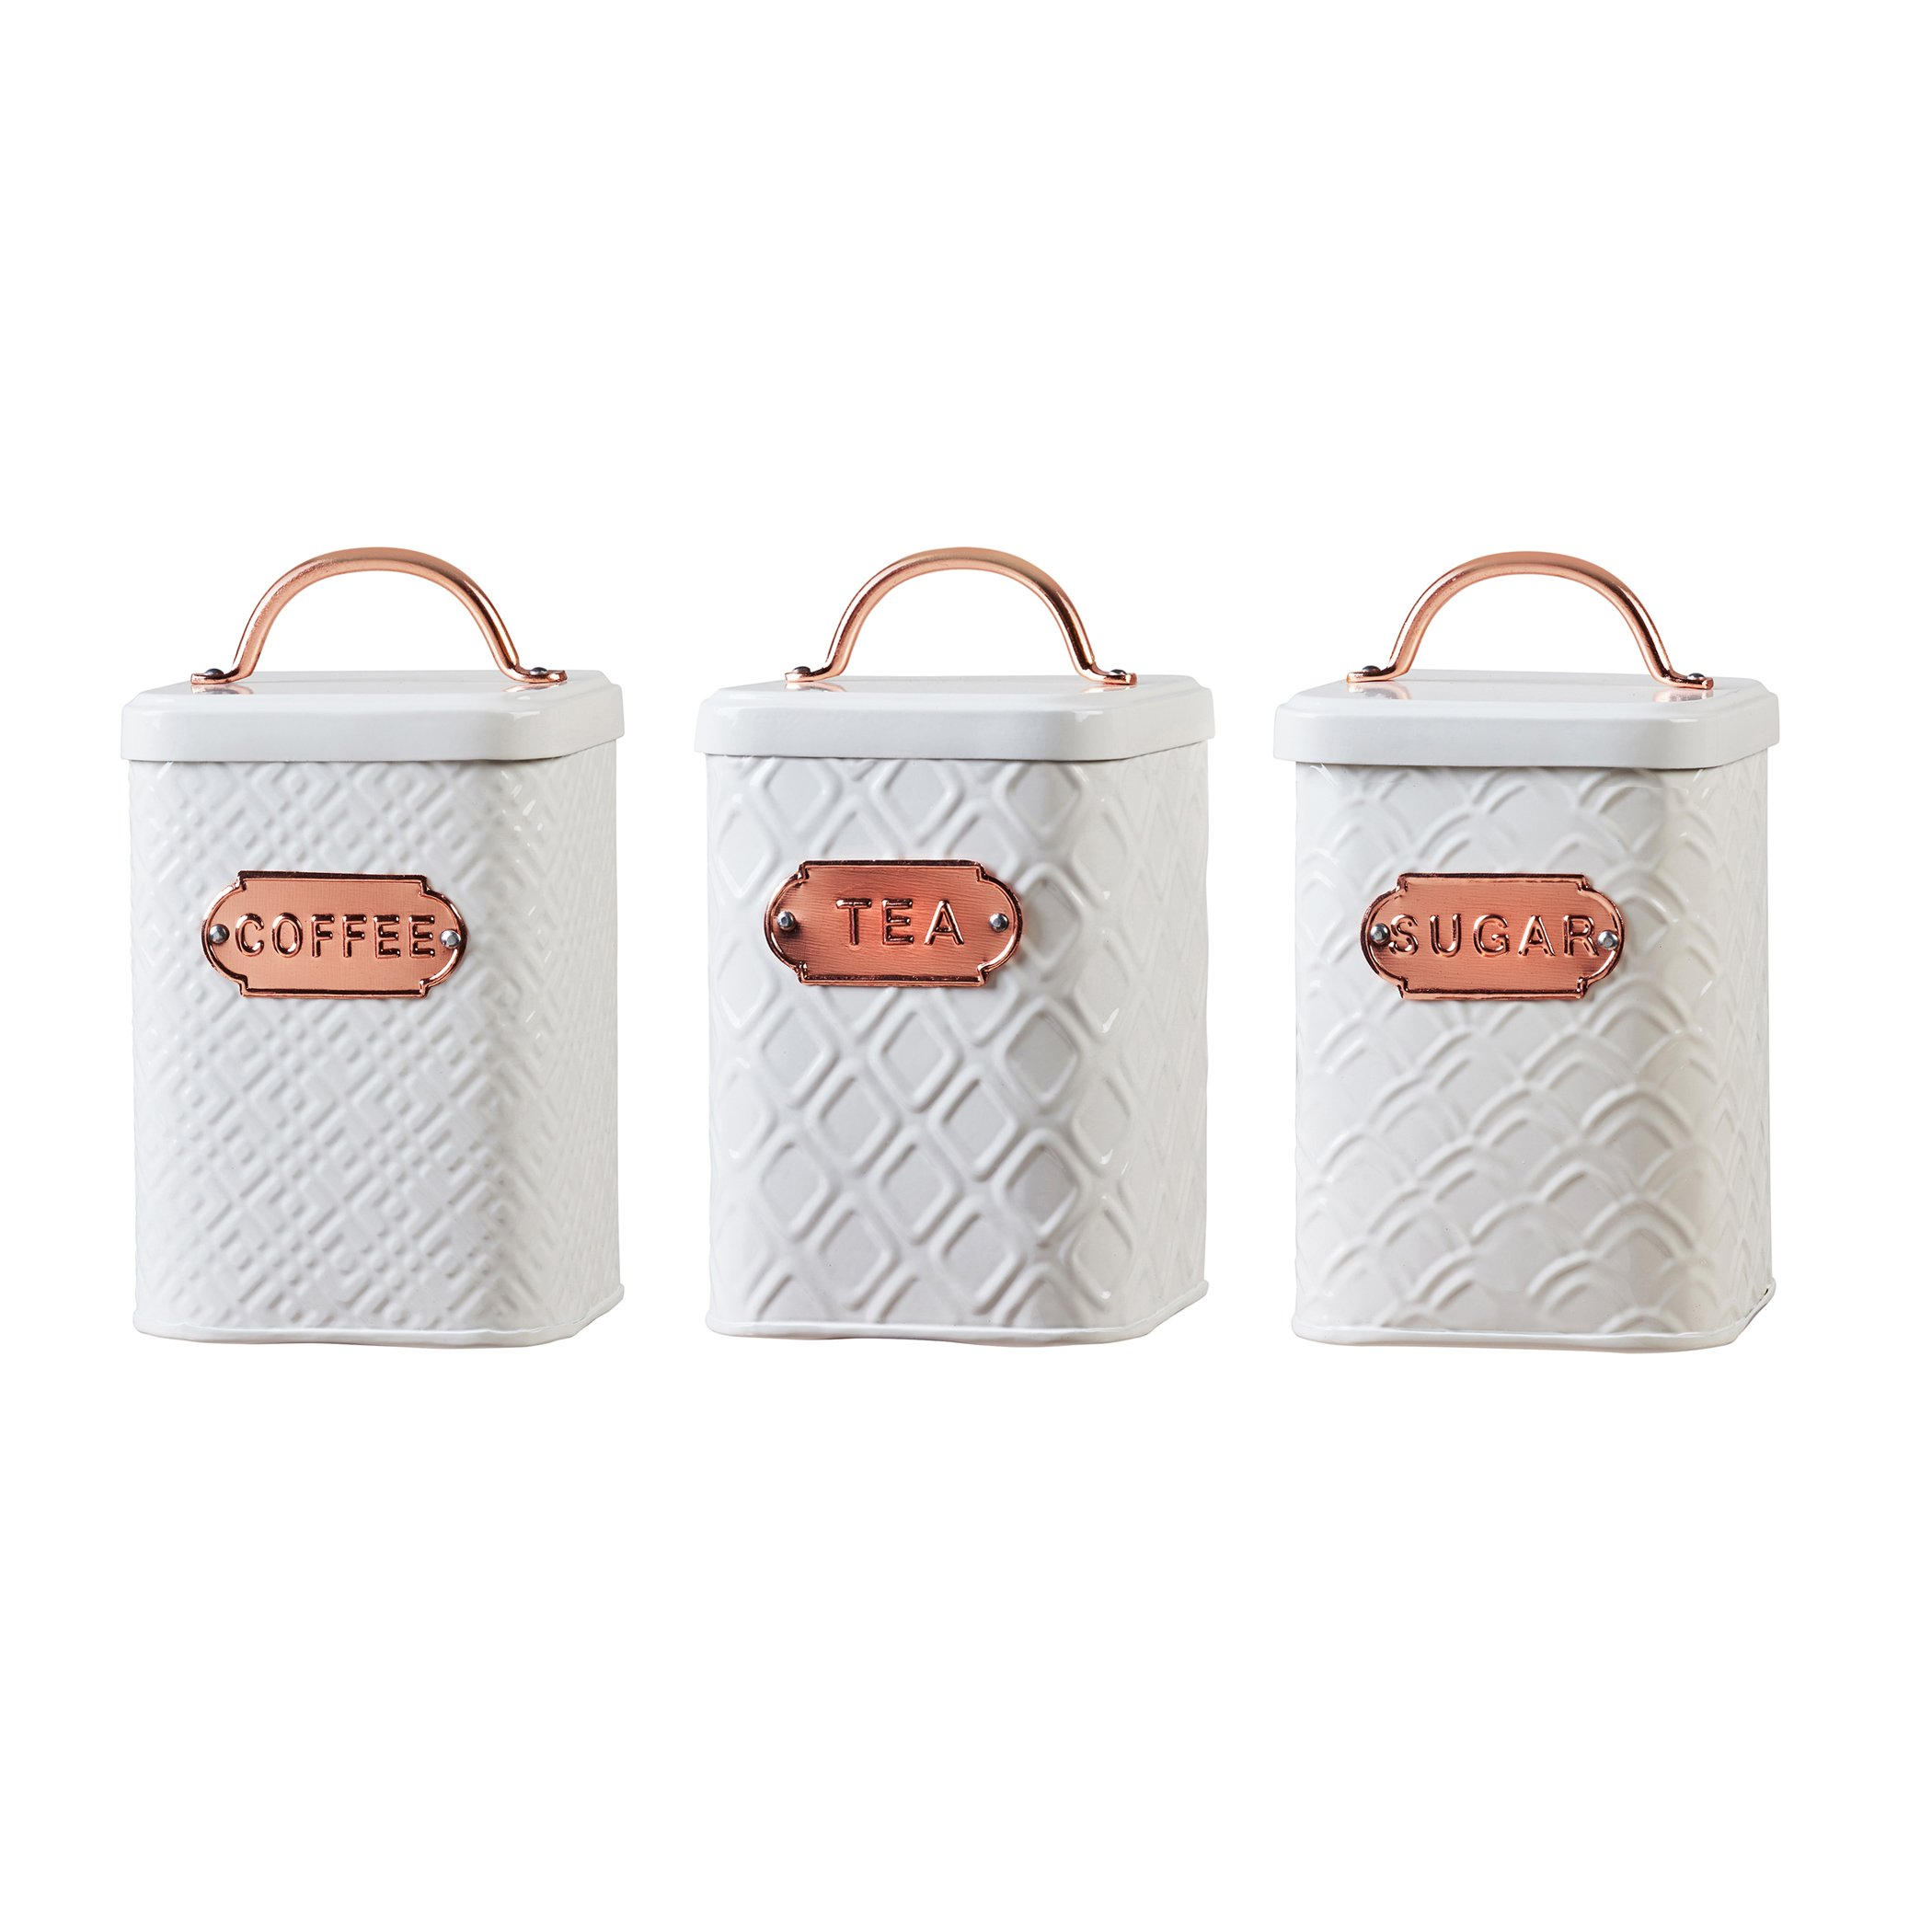 Amici Home, A5IP007AS3R, Ventana Collection Metal Storage Canisters, Food Safe, Copper Handle and Relief Label, Push Top Lid, Assorted Set of 3, 60 Ounces by Amici Home (Image #1)